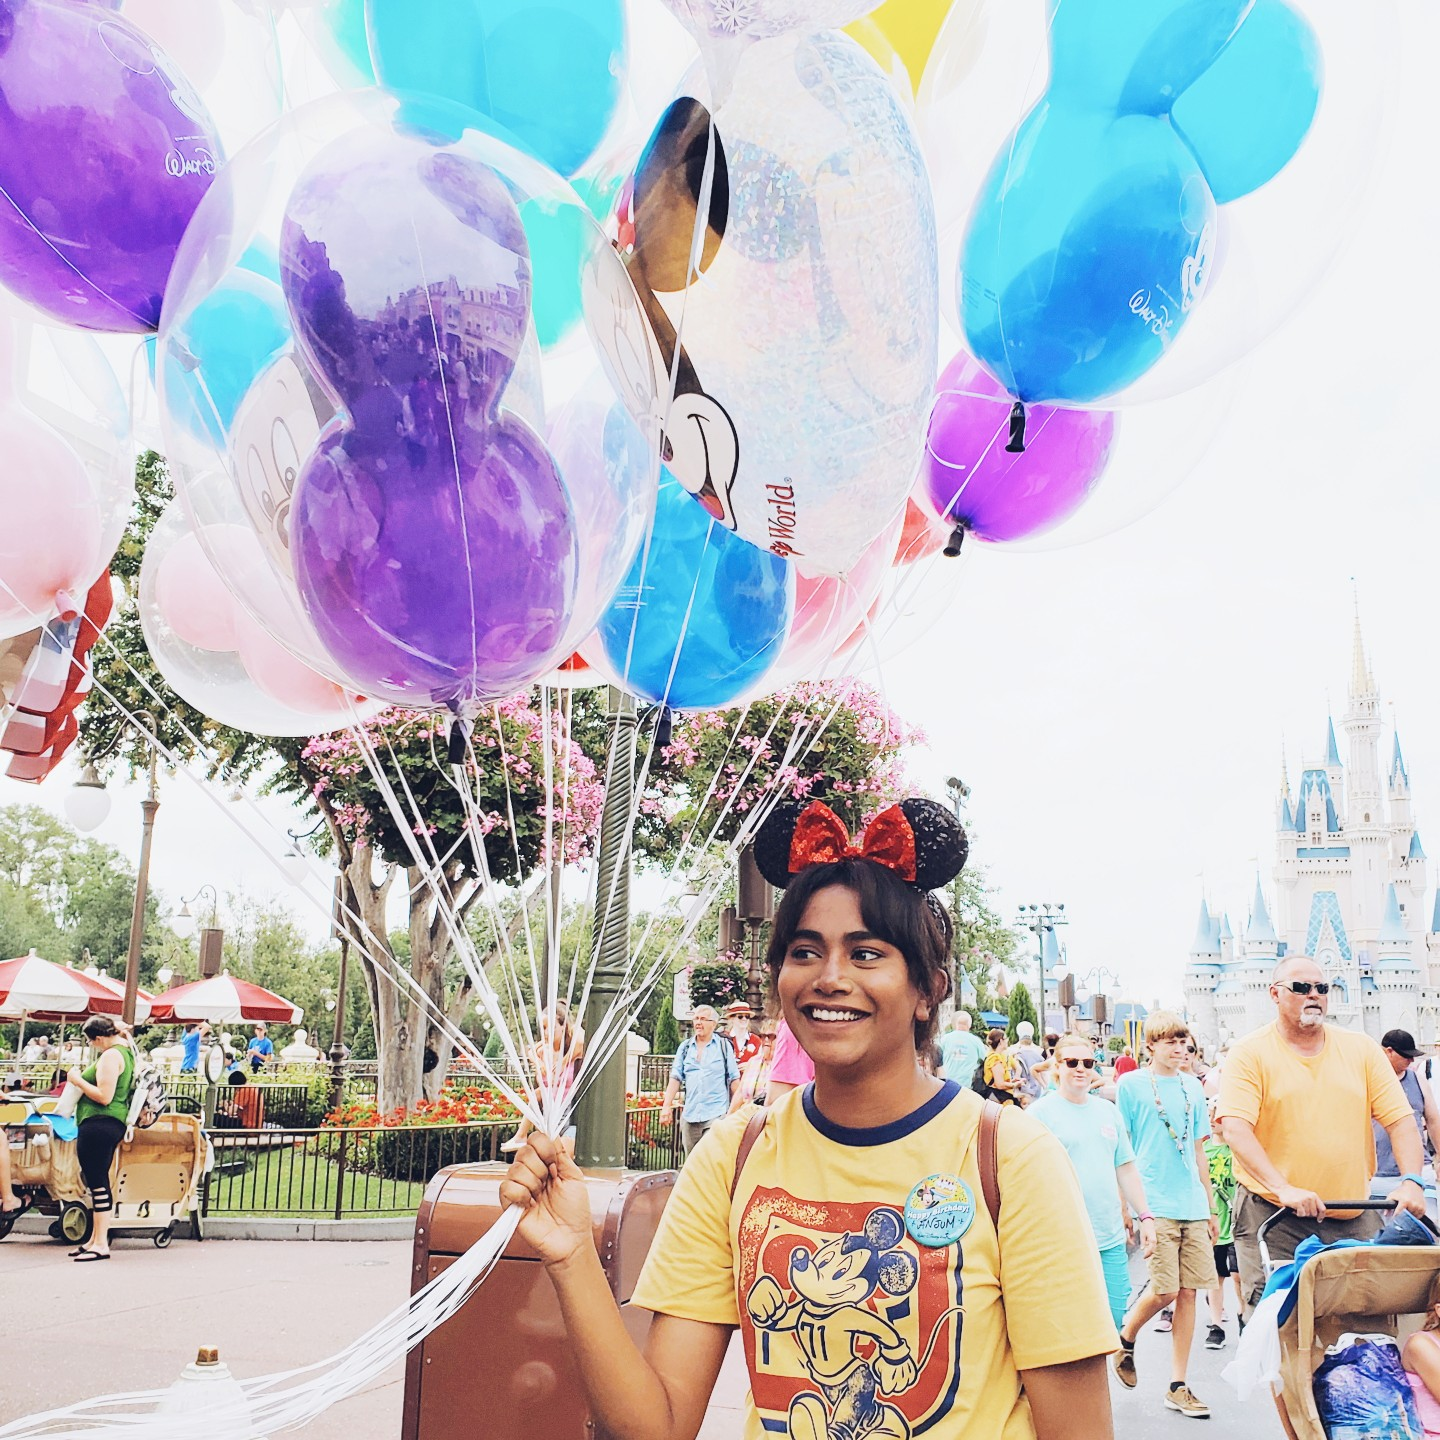 Indian Girl Magic Kingdom Walt Disney World Holding Balloons